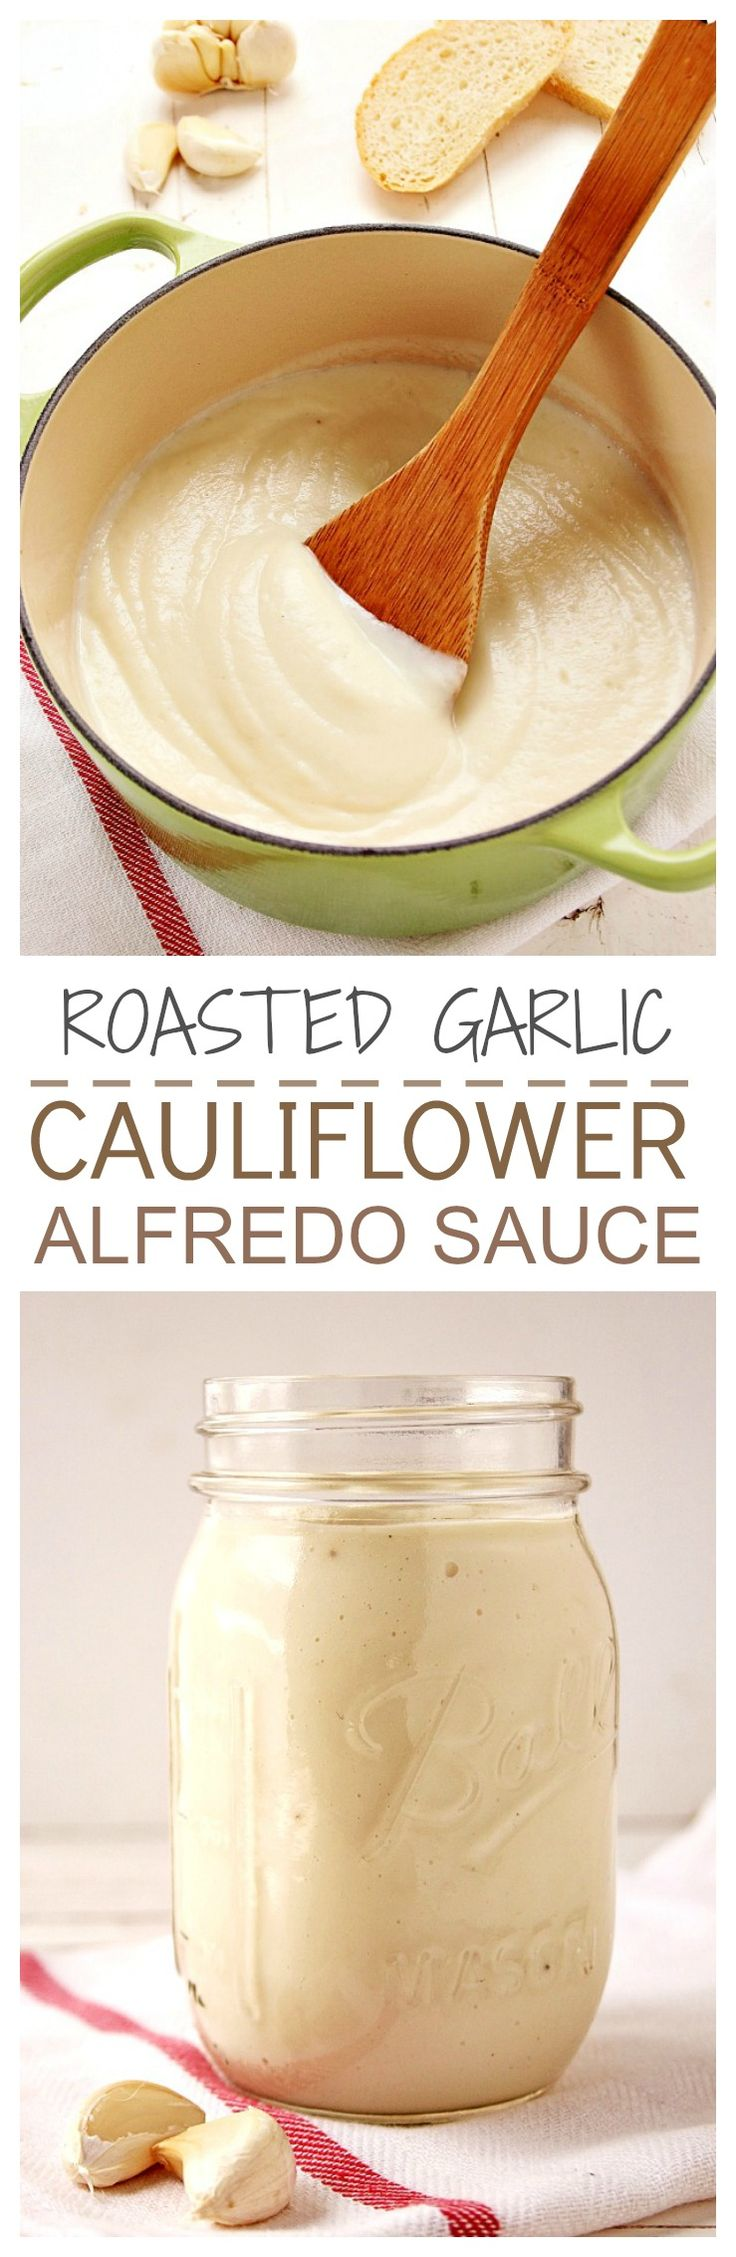 Roasted Garlic Cauliflower Alfredo Sauce – turn cauliflower into creamy and delicious sauce with the addition of roasted garlic and Parmesan! Skip the cheese for a vegan option! Check out our VIDEO to see how to make it!